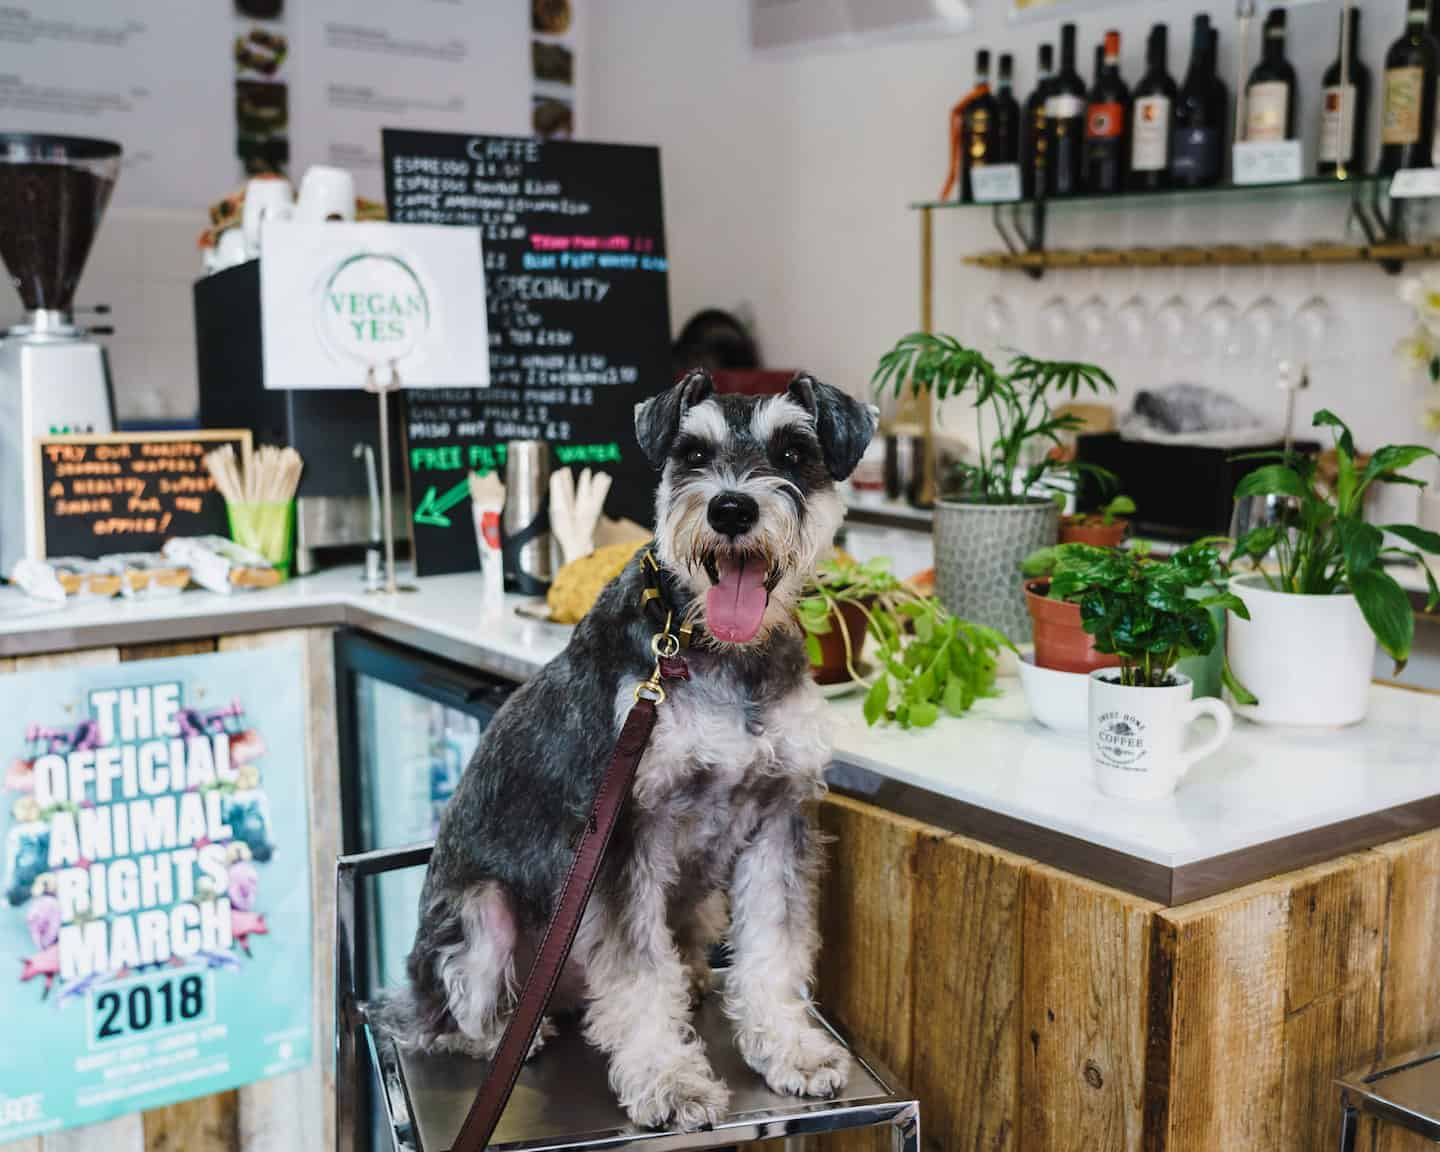 My Dog Friendly London By Rusty Red The Schnauzer | Dog Friendly Shoreditch and Hoxton Vegan Yes 2